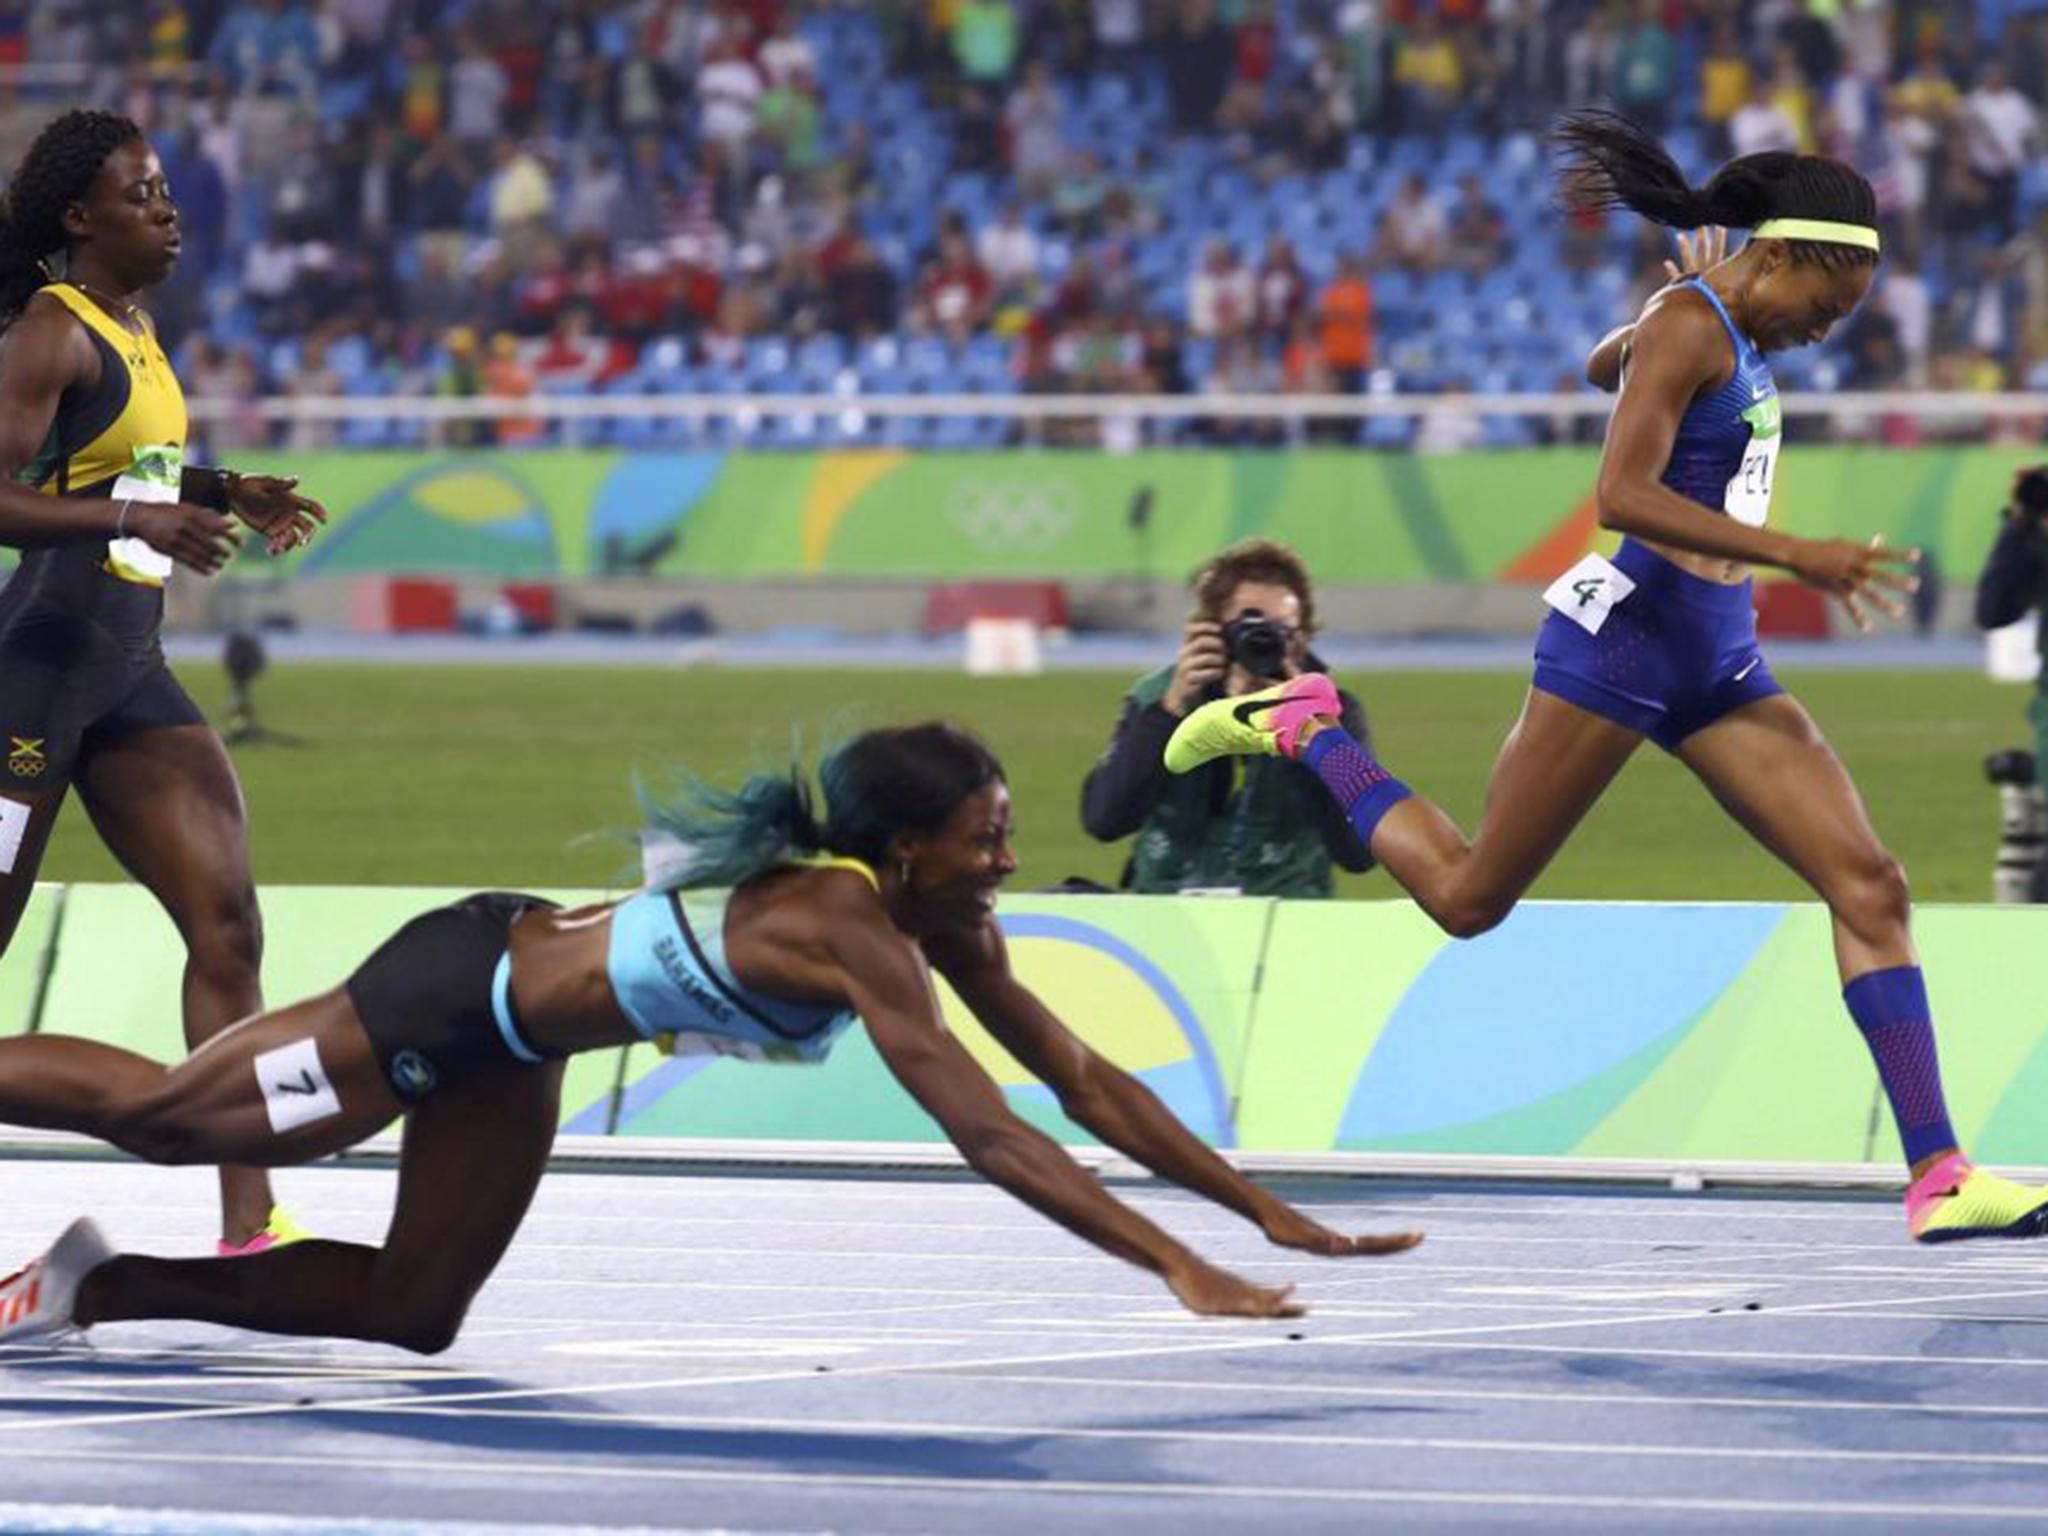 Rio 2016: Shaunae Miller dives over line to win women's 400m gold medal